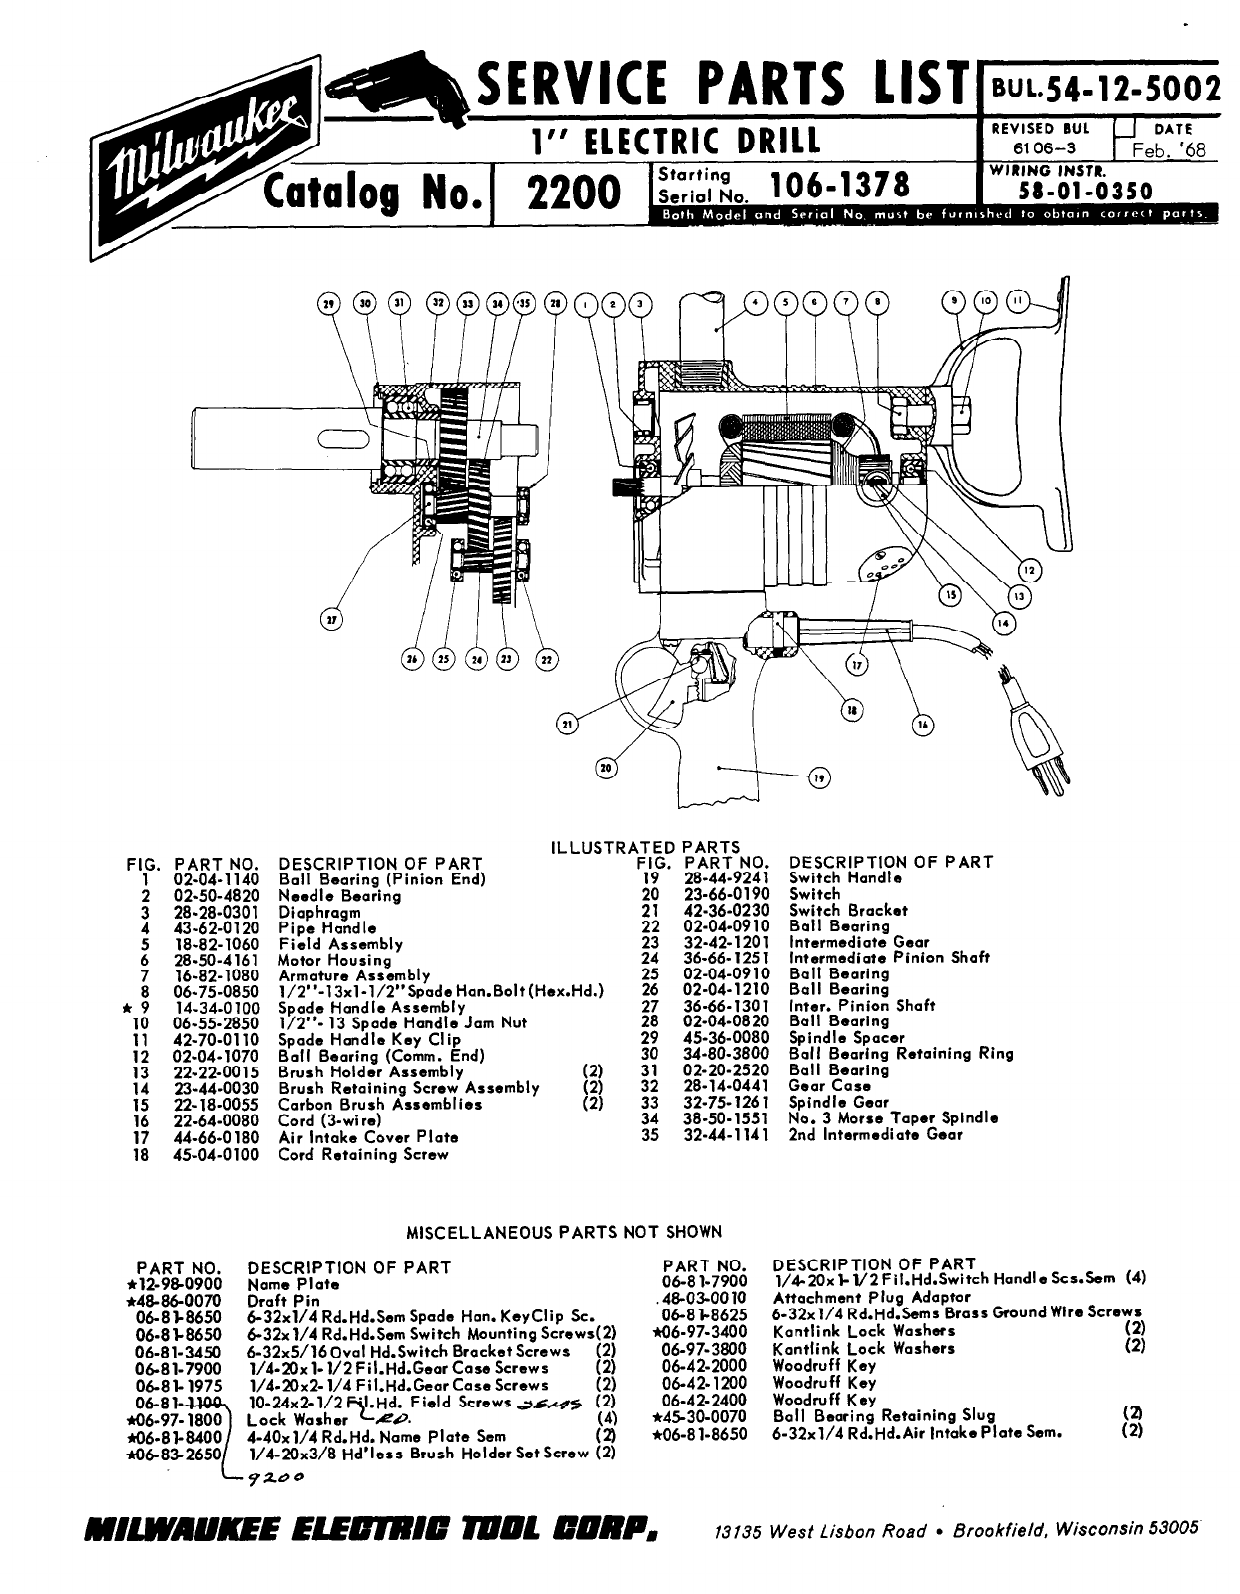 milwaukee drill 02 04 1070 user guide manualsonline com rh powertool manualsonline com Milwaukee Magnetic Drill Parts Schematics Milwaukee Magnetic Drill Parts Schematics